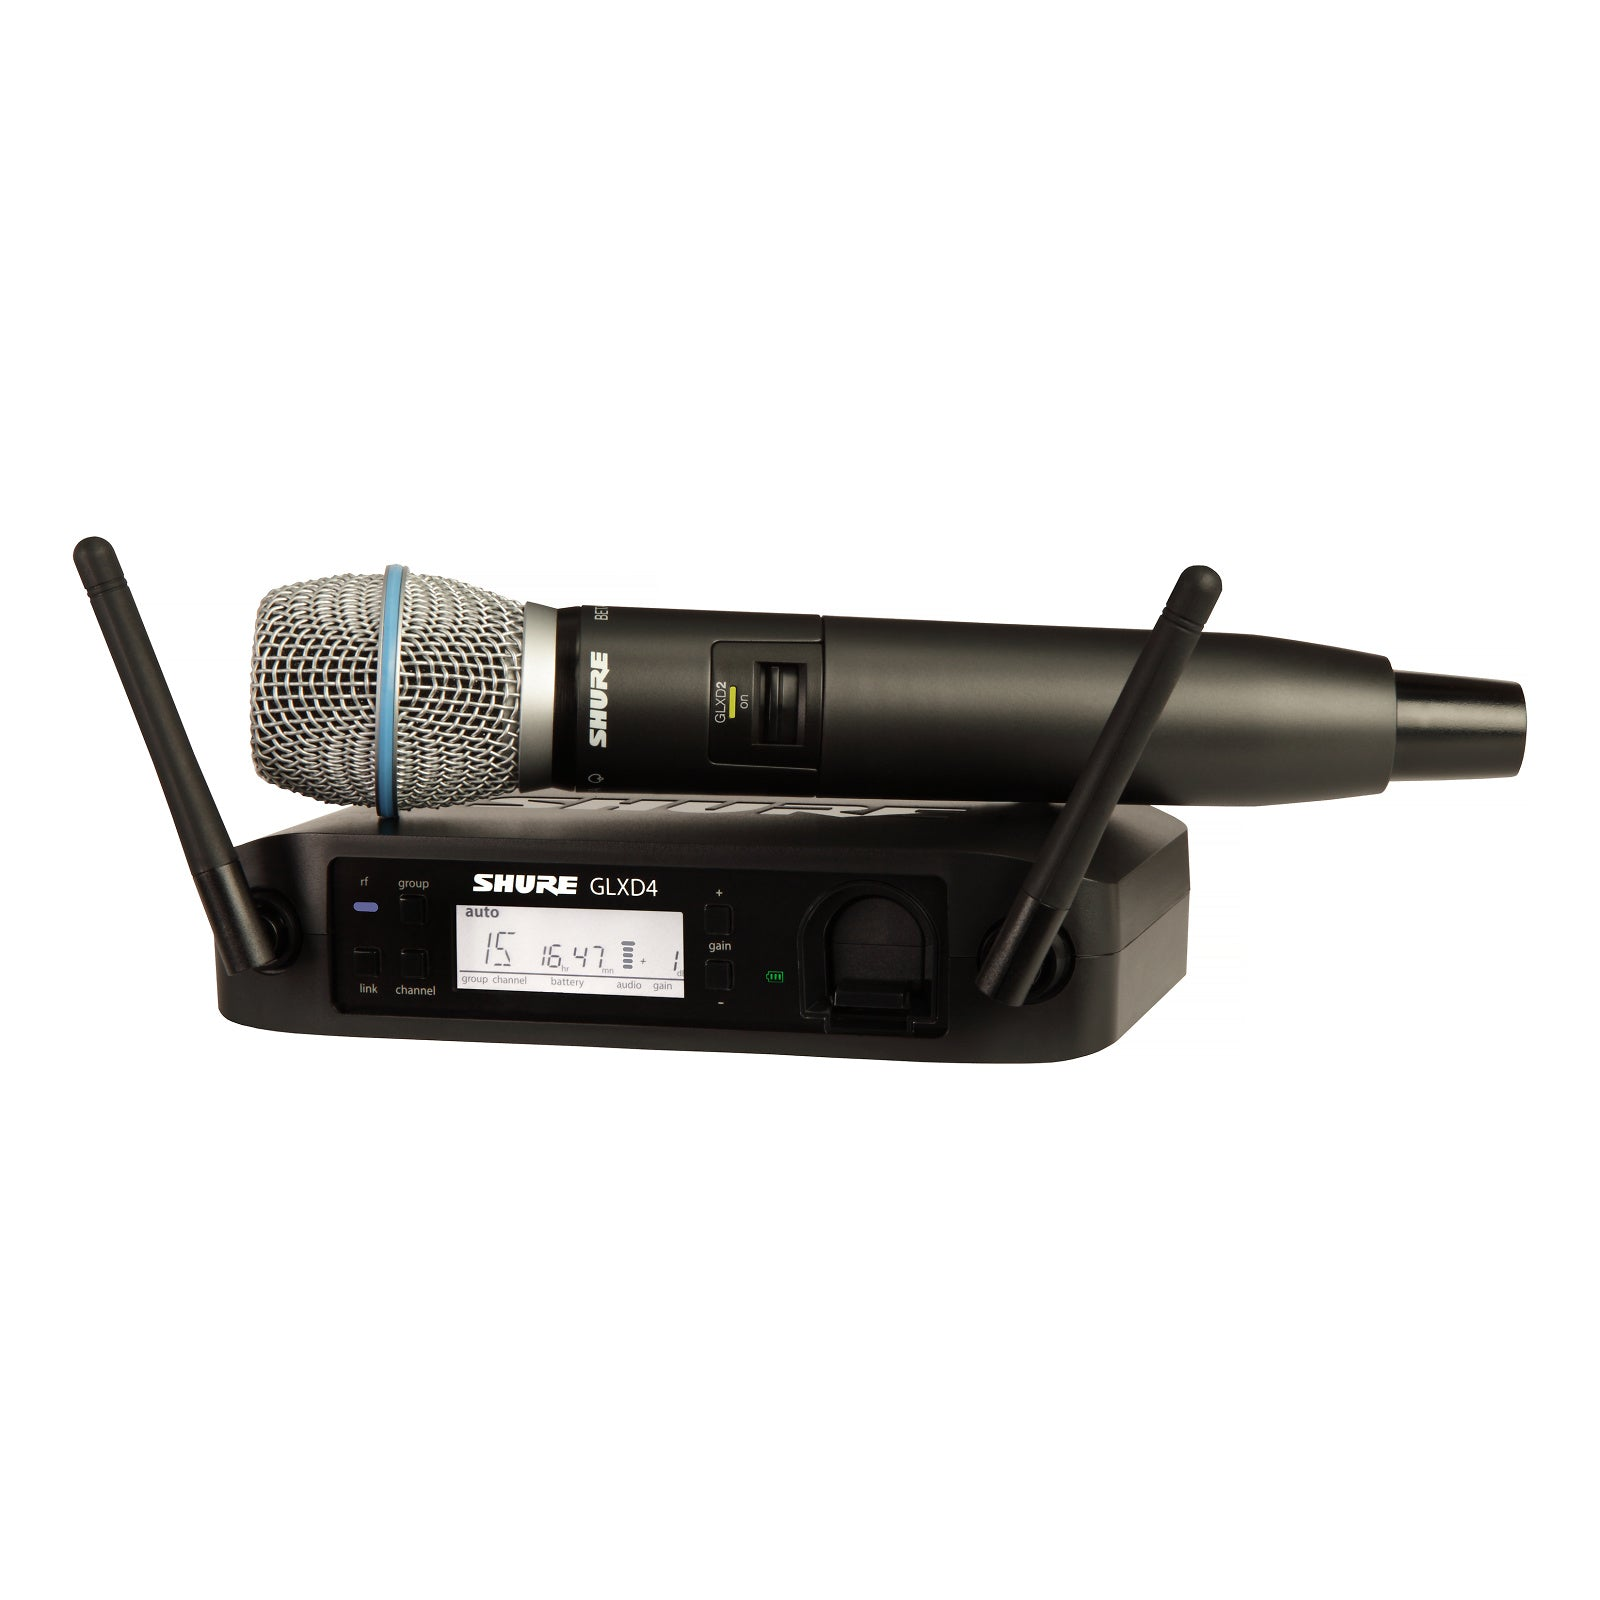 Shure GLXD24/B87A Digital Handheld Wireless Beta87A Microphone System, Band Z2 (2.4 GHz)